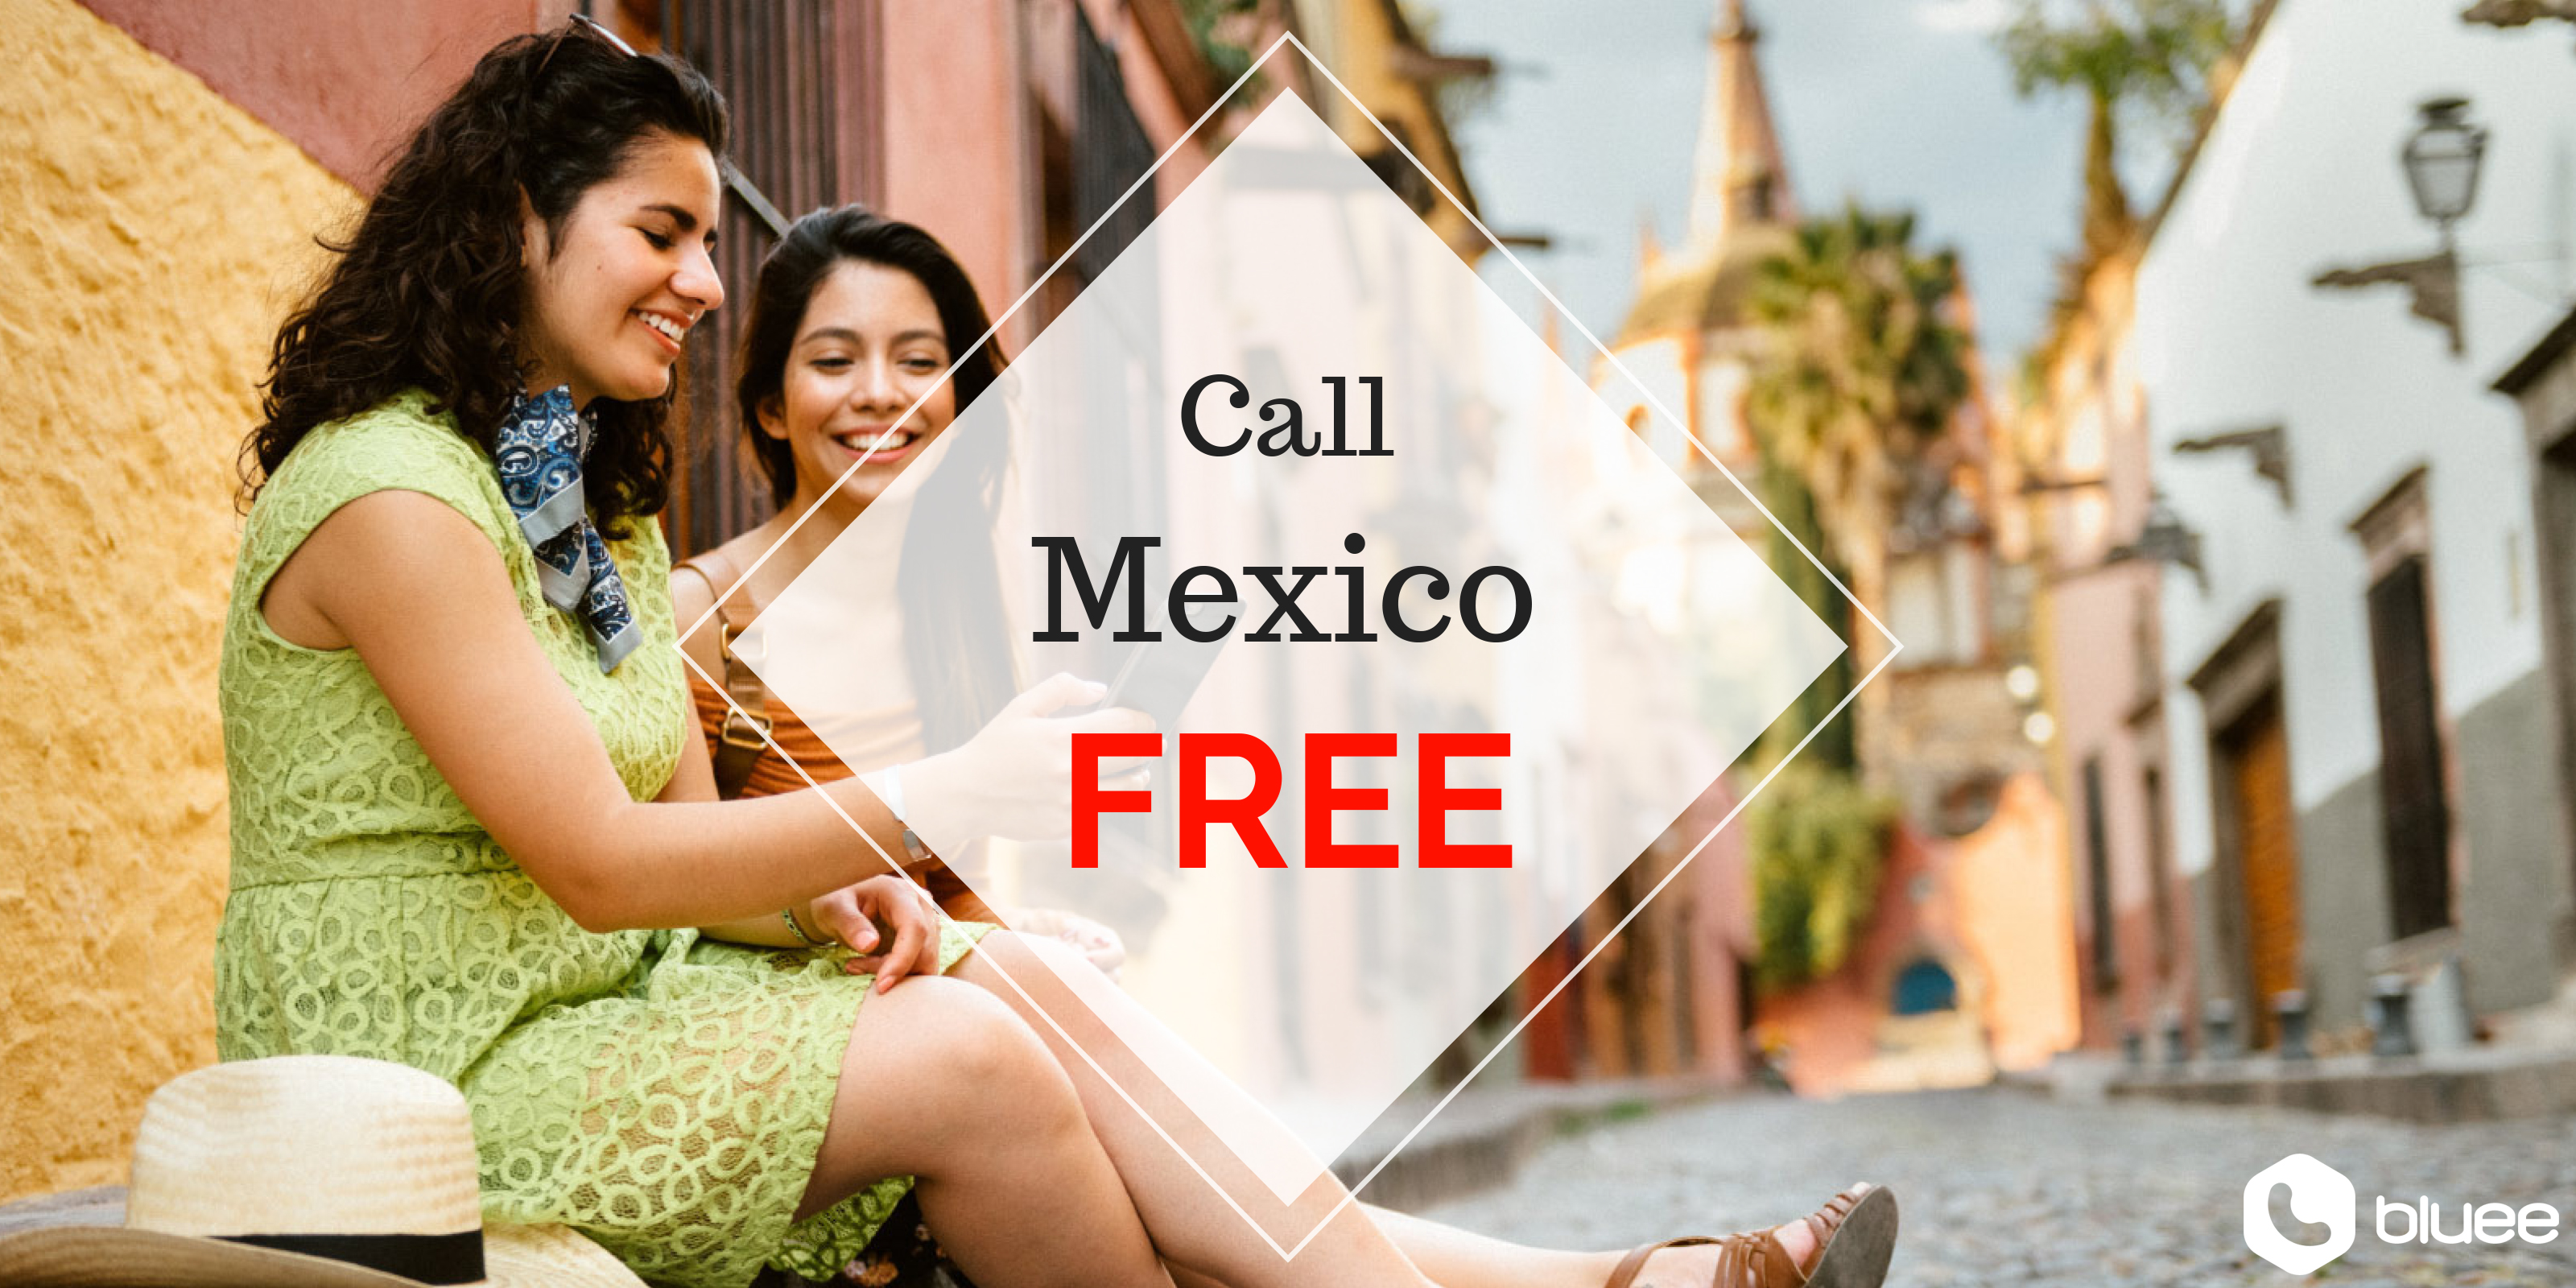 Call Mexico for FREE